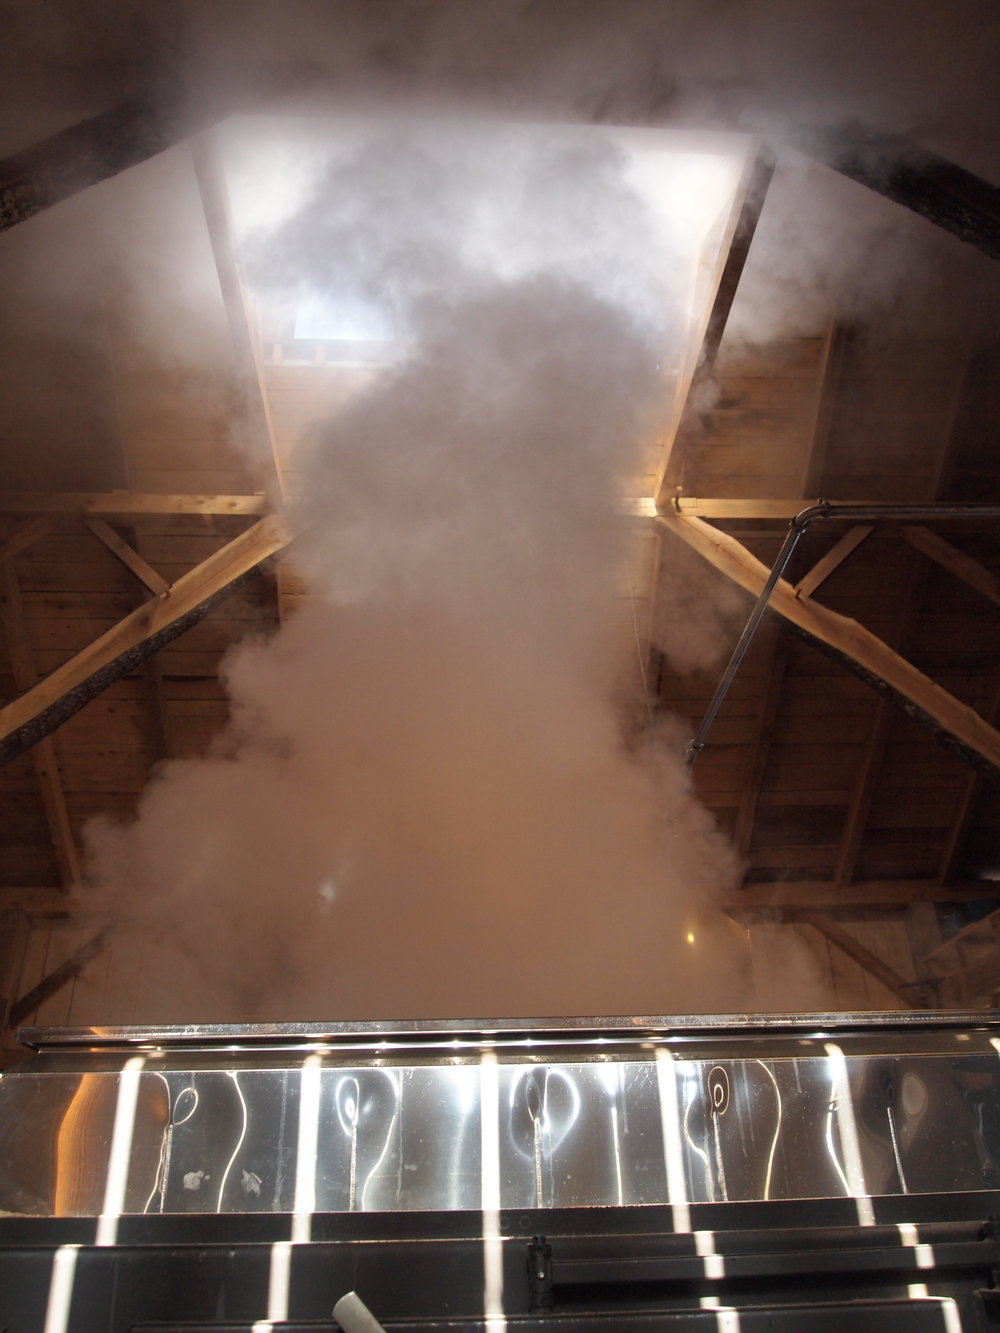 STEAM FROM THE EVAPORATOR